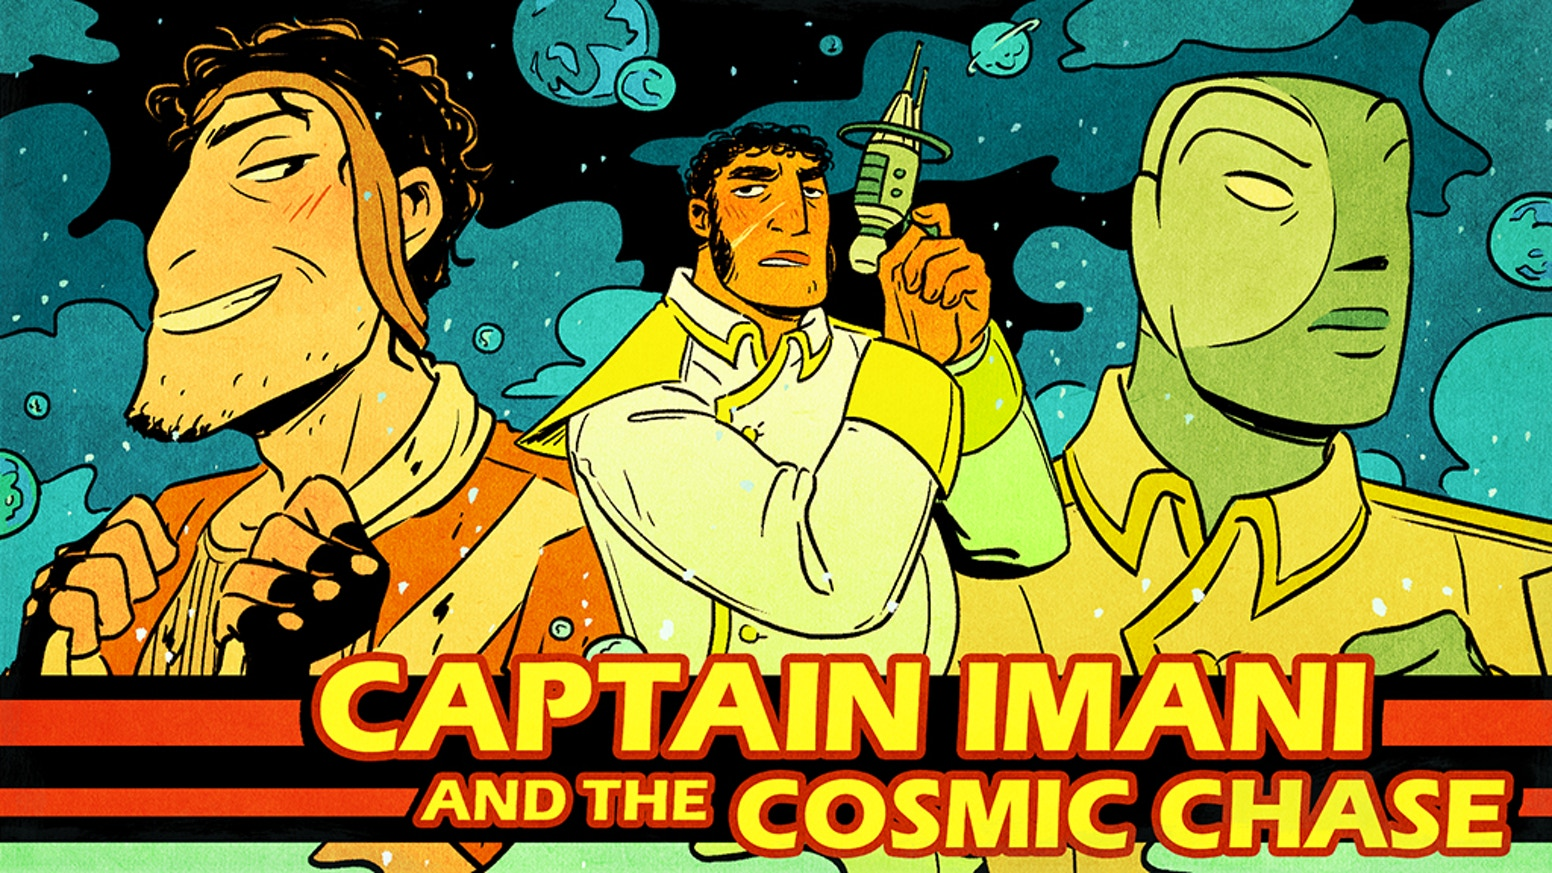 The sexy adventures of a space-captain, his first mate and his sworn enemy collected into a full-colour erotic graphic novel!